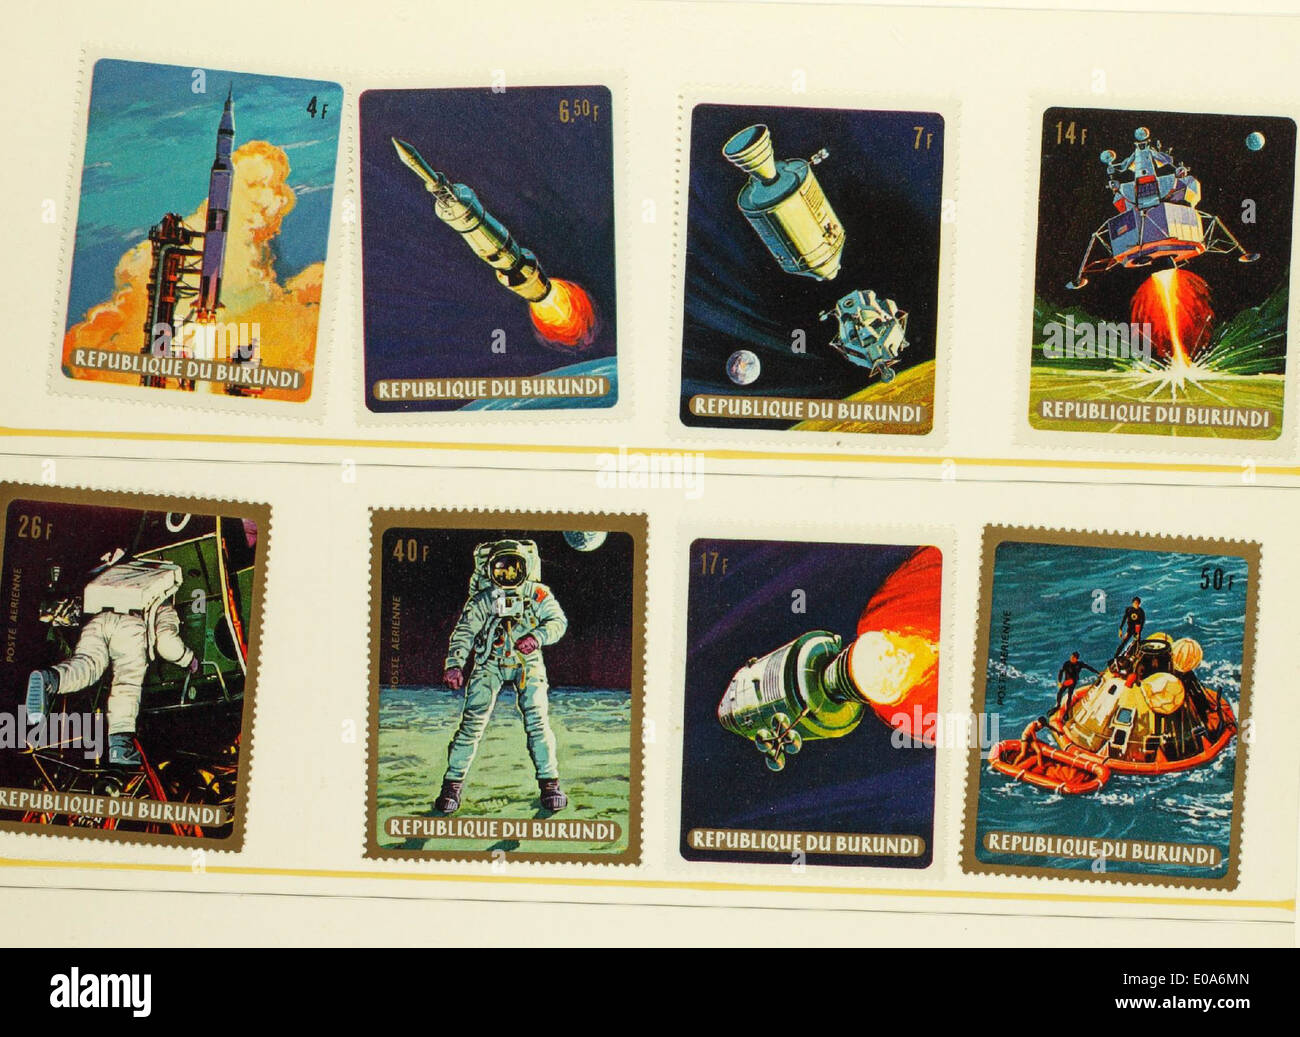 Space Stamps - Stock Image